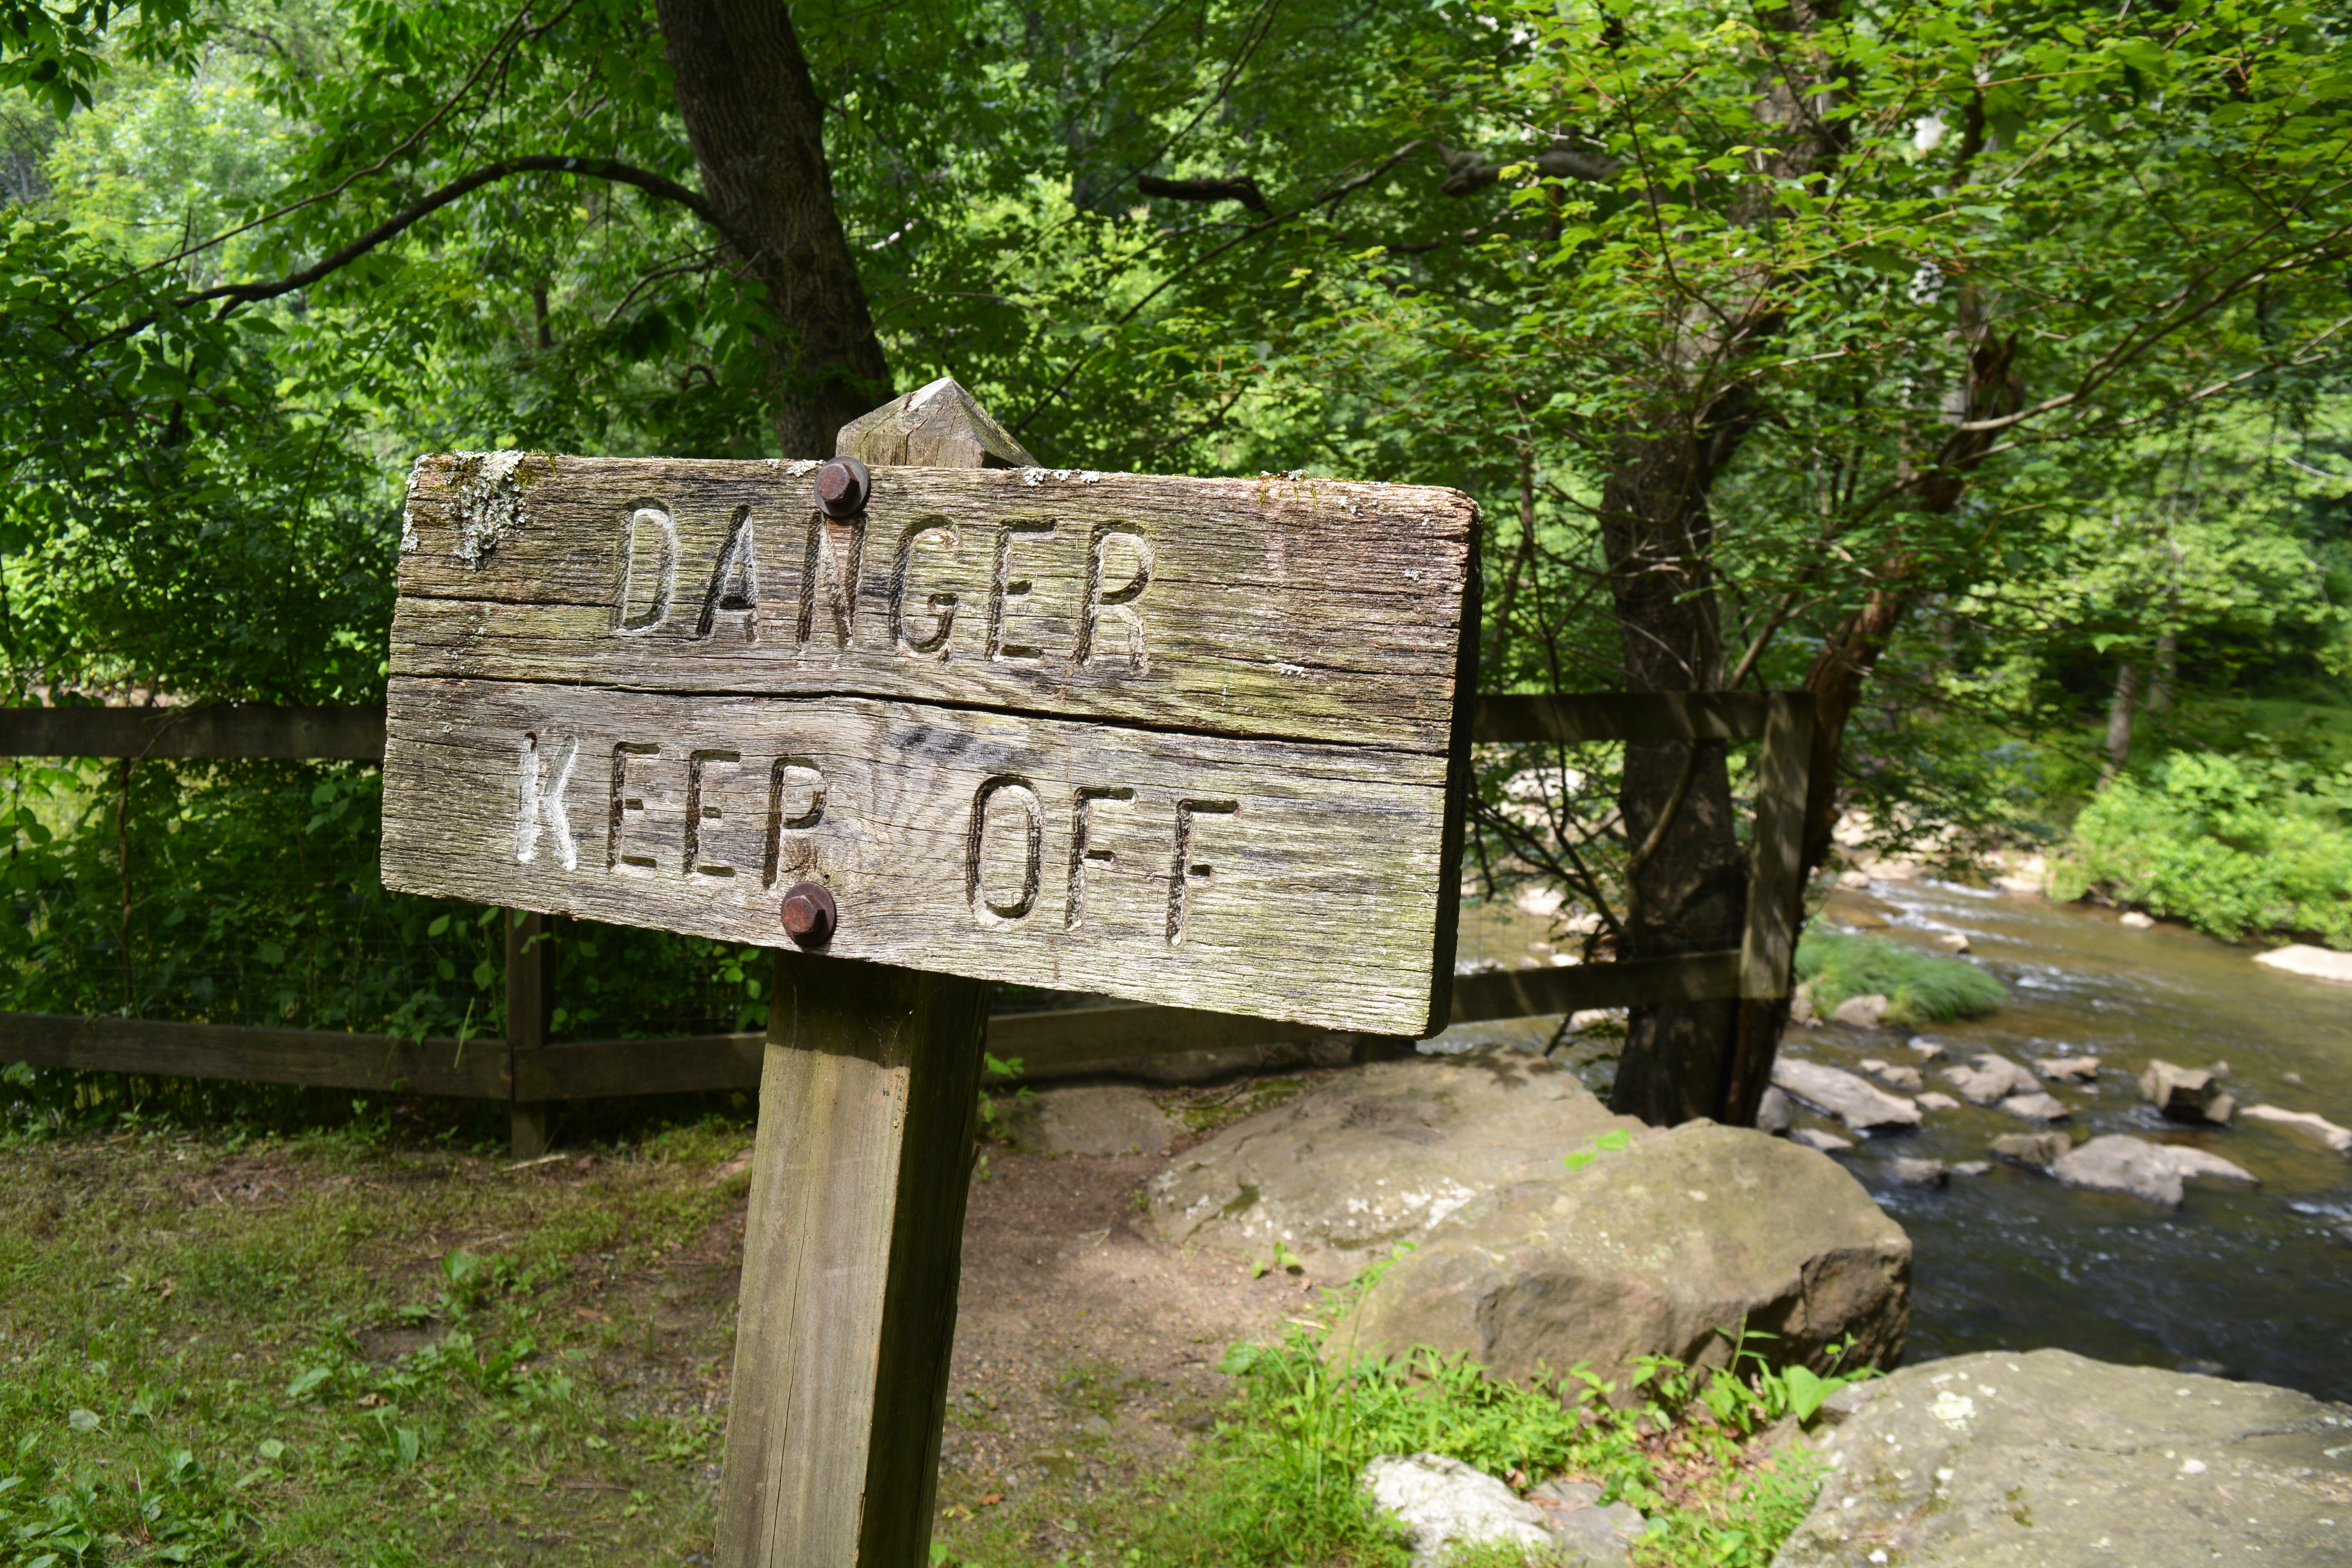 """Sign that says """"Danger, Keep Off"""""""